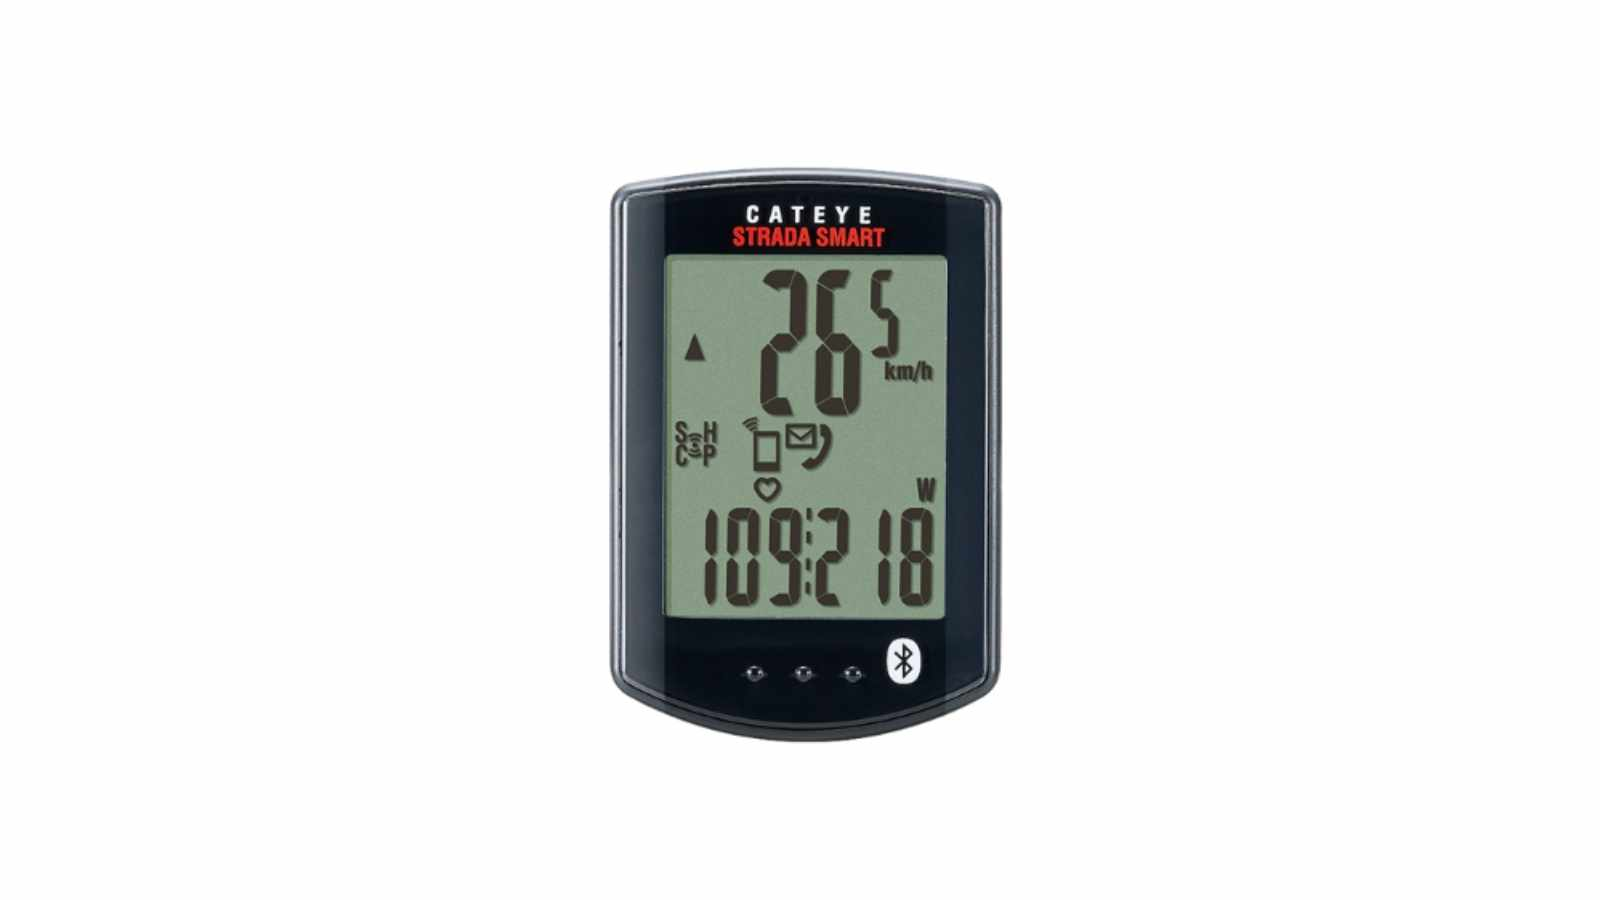 Get yourself a great deal on the CatEye Strada Smart computer, only £29.99 at CycleSurgery